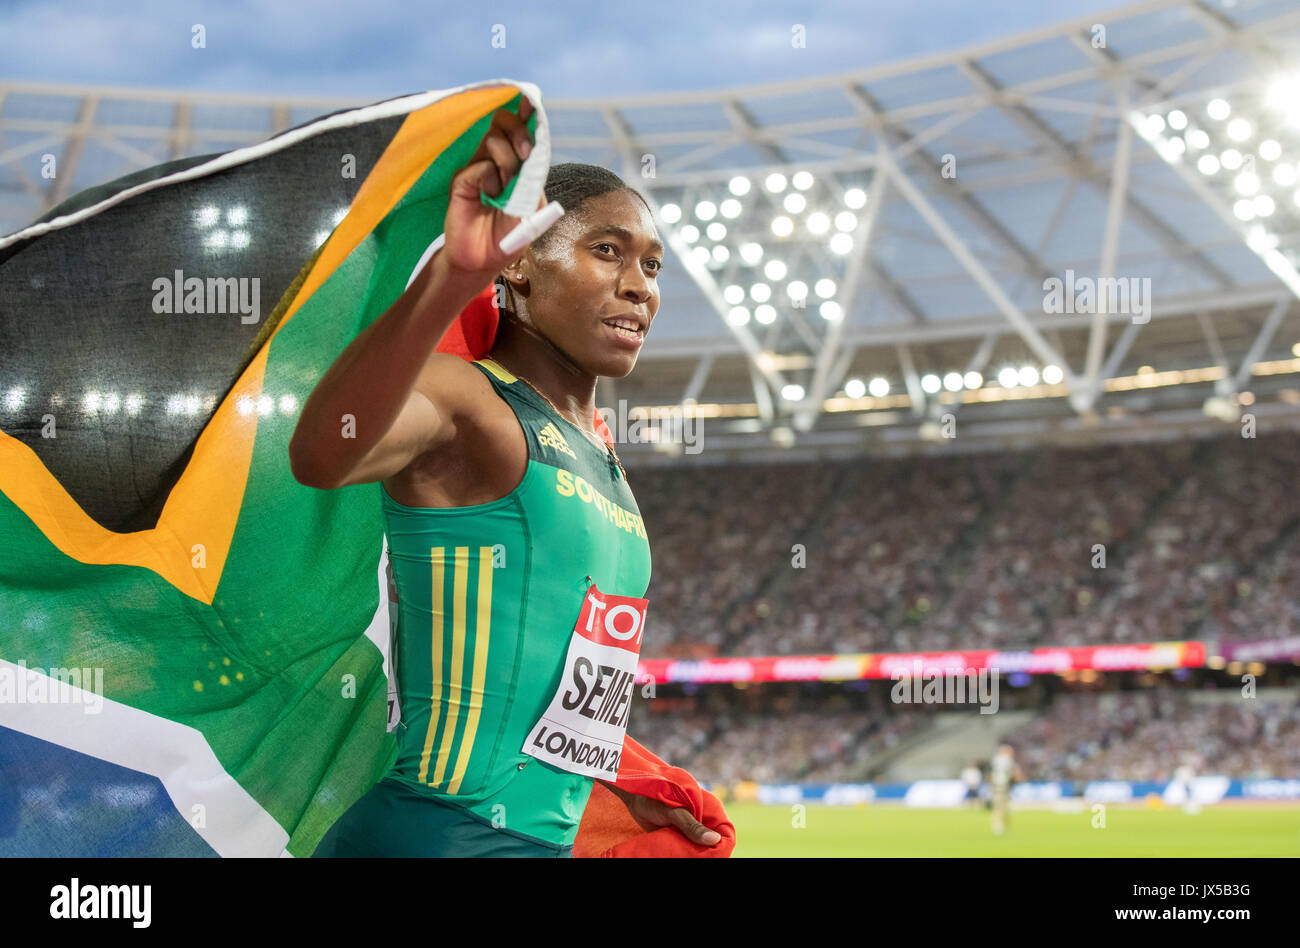 Caster SEMENYA of South Africa celebrates winning her Gold Medal in the Women's 800 metres Final during the Final Day of the IAAF World Athletics Championships (Day 10) at the Olympic Park, London, England on 13 August 2017. Photo by Andy Rowland / PRiME Media Images. - Stock Image